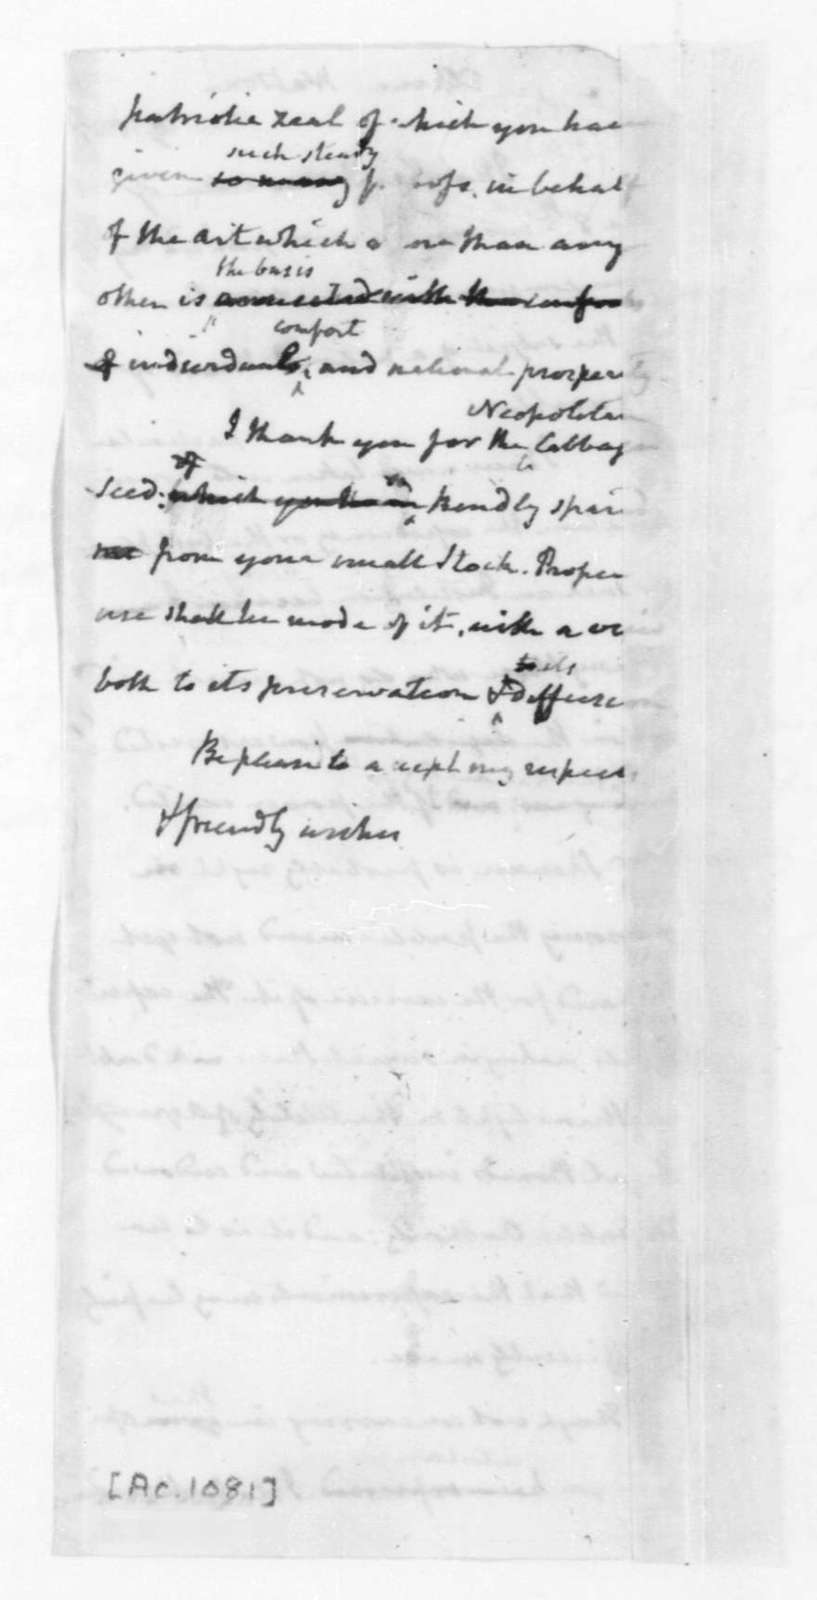 James Madison to Elkanah Watson, March 18, 1825.